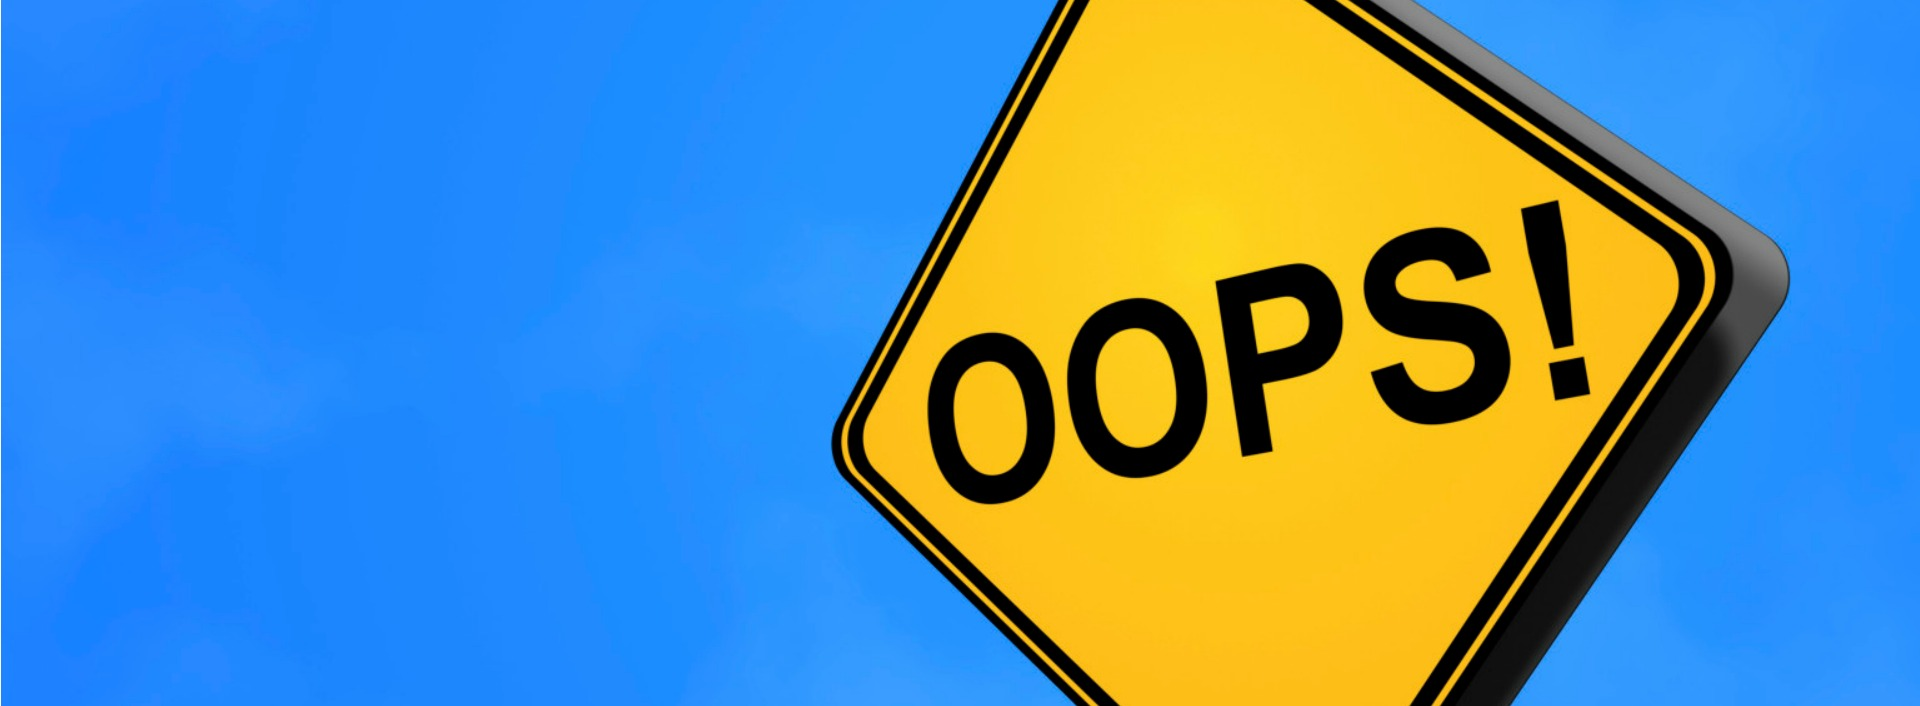 """Try to use daily English phrases like """"oops"""" every day!"""